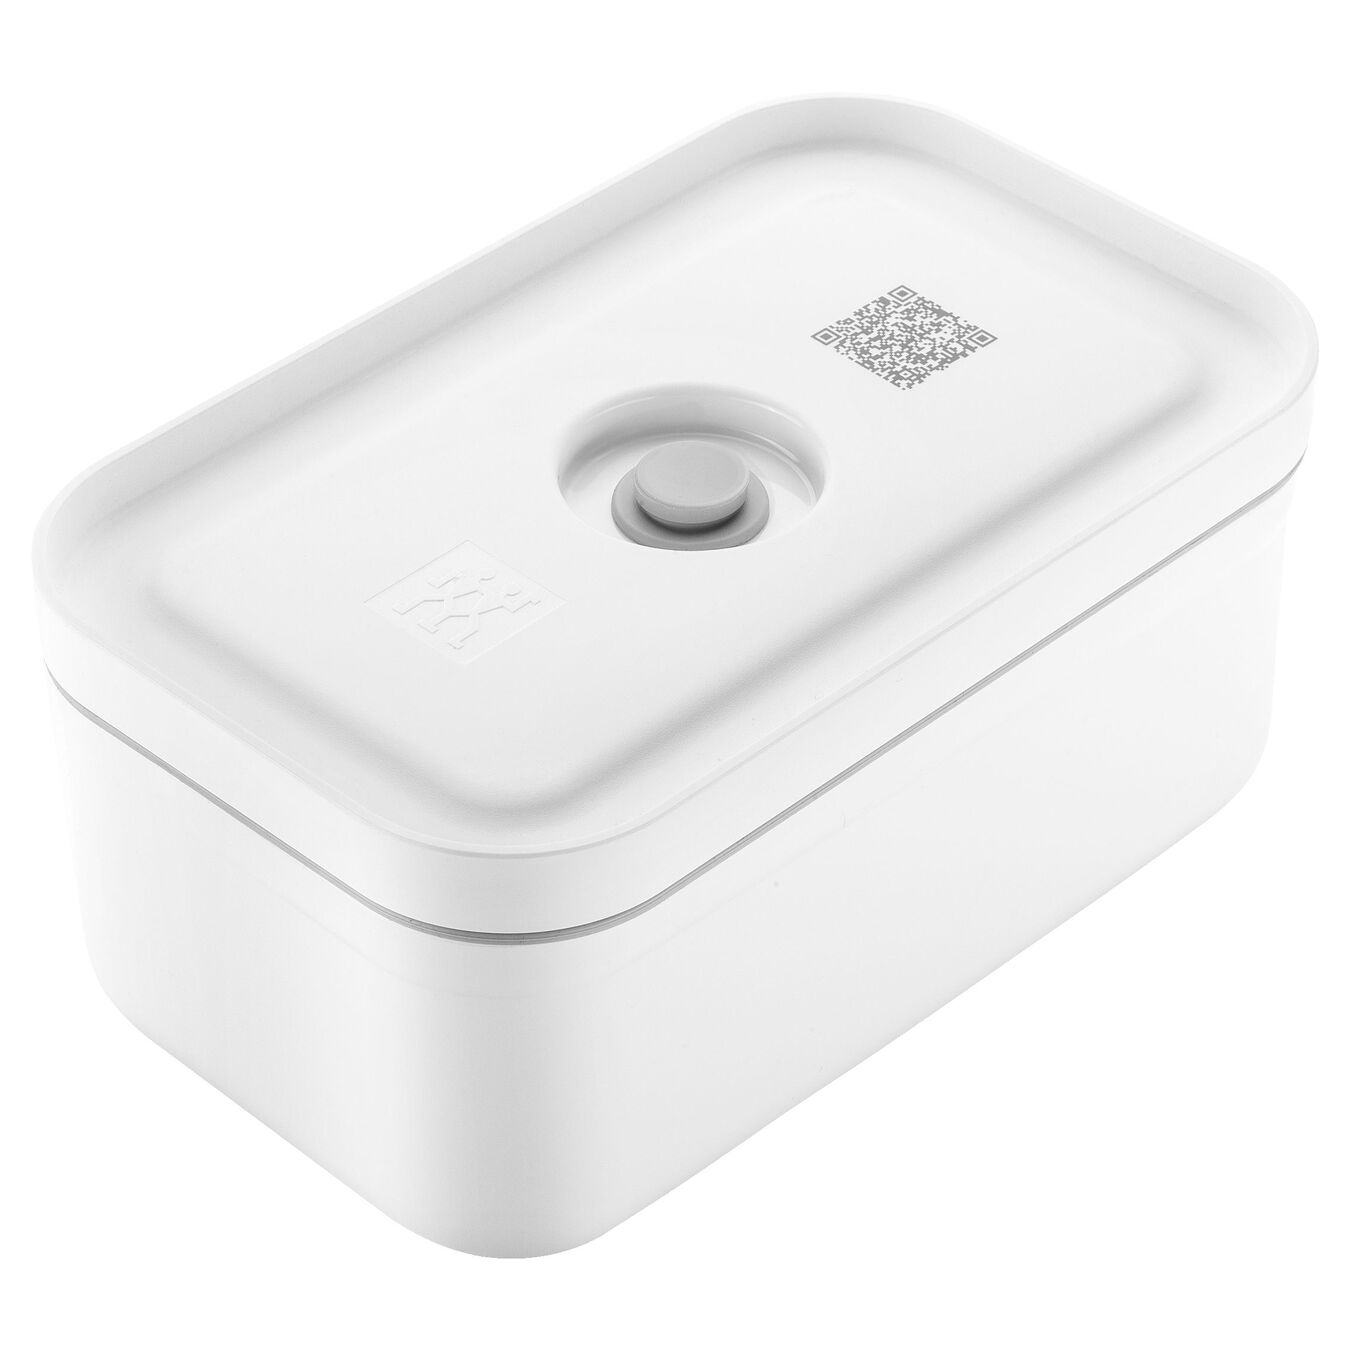 medium Vacuum lunch box, Plastic, white,,large 1